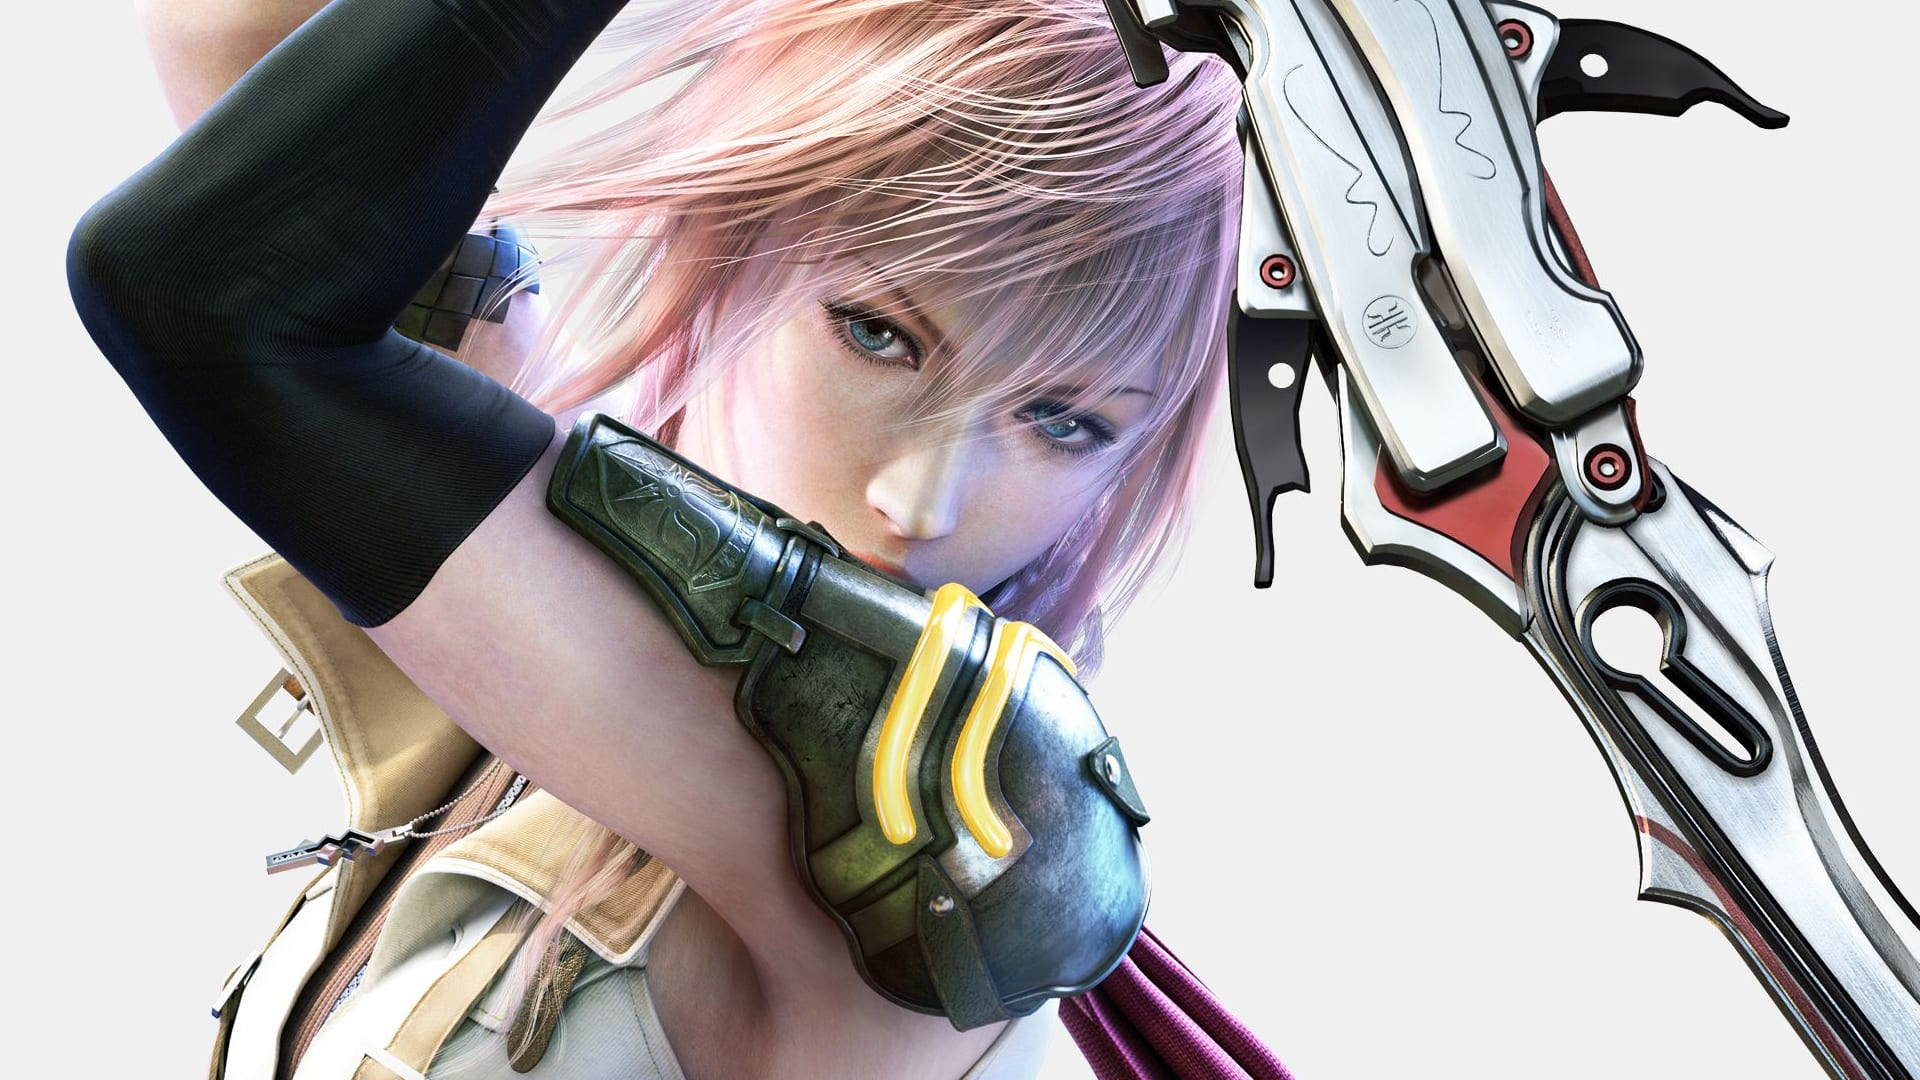 lightning-final-fantasy-xiii-2-28-hd-wallpaper | handsome phantom